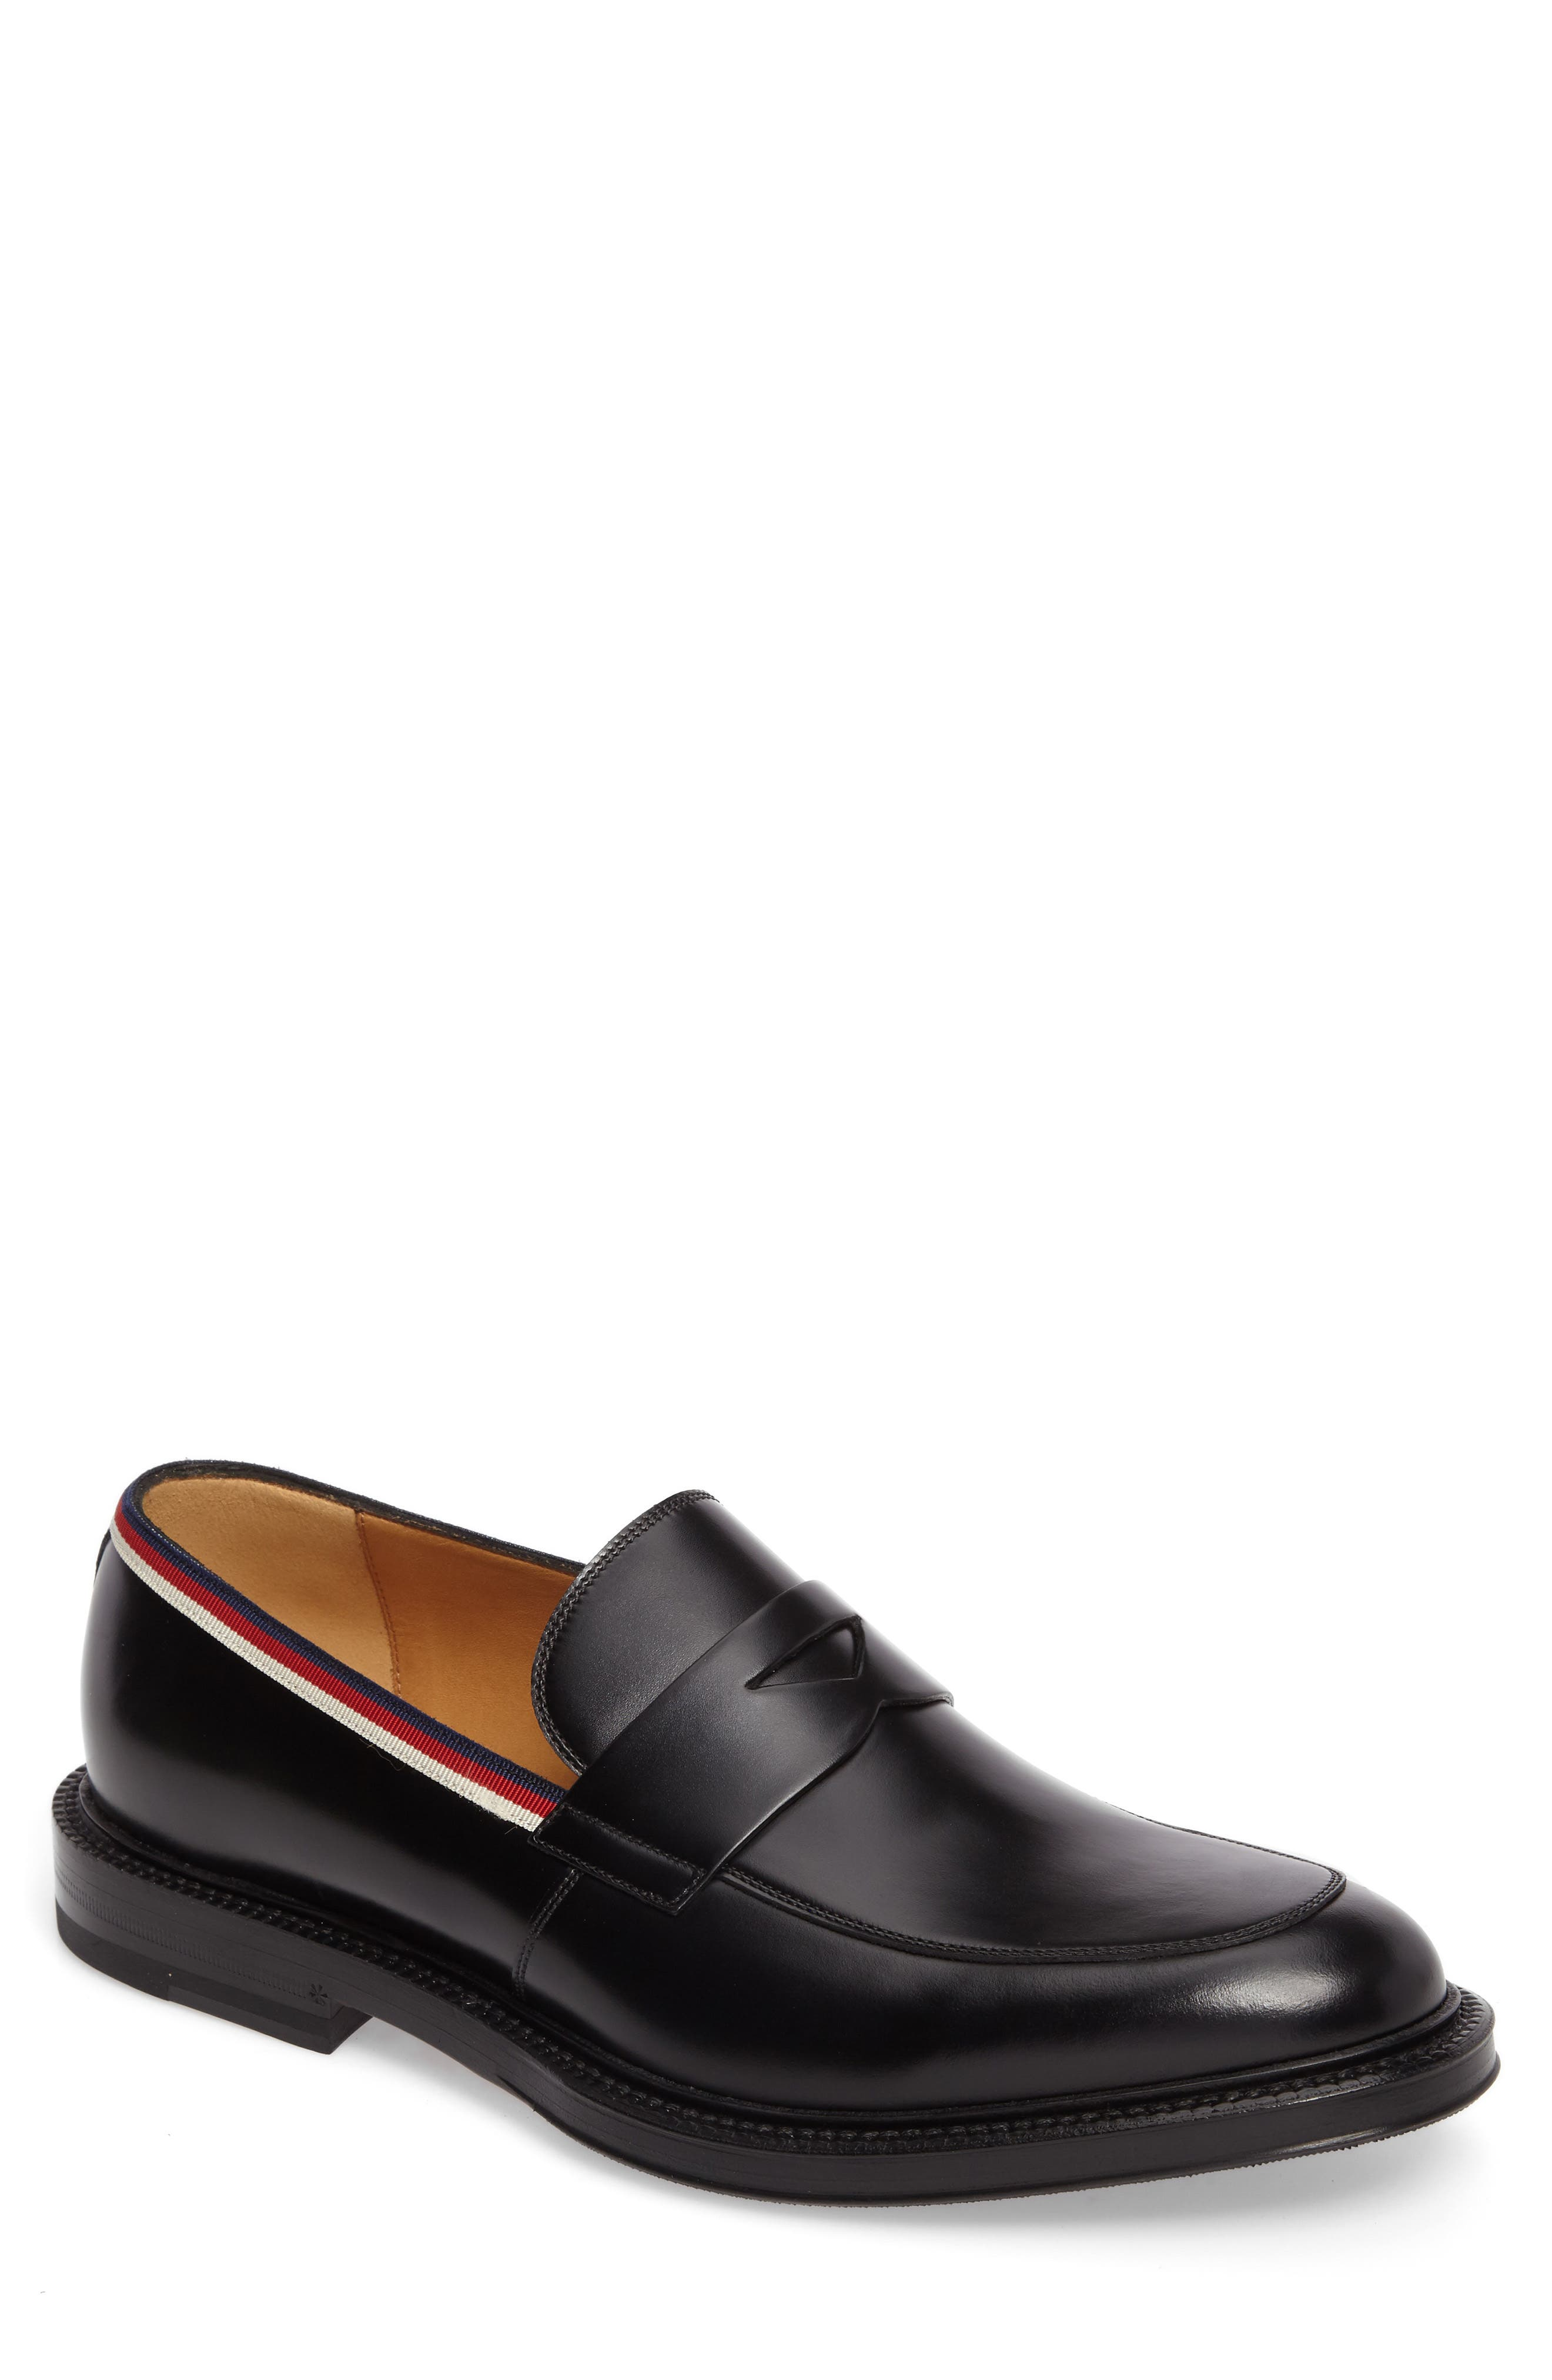 Beyond Penny Loafer,                             Main thumbnail 1, color,                             Black